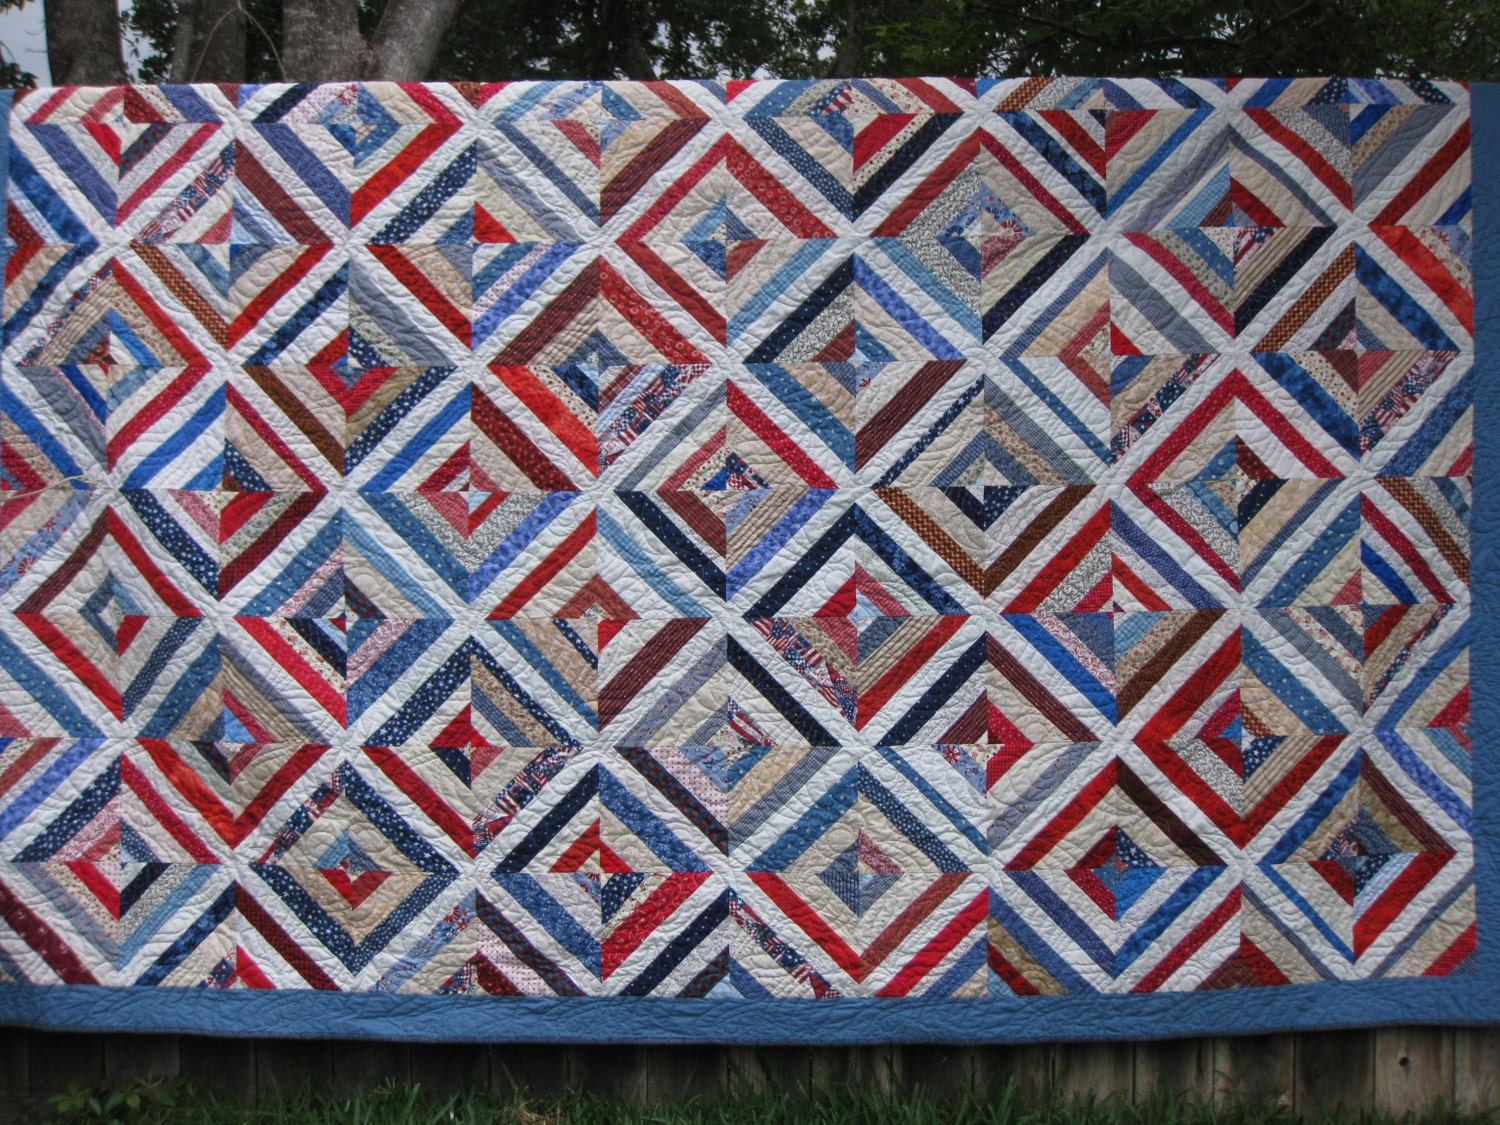 Queen Red White And Blue String Quilt 93 X 110 By